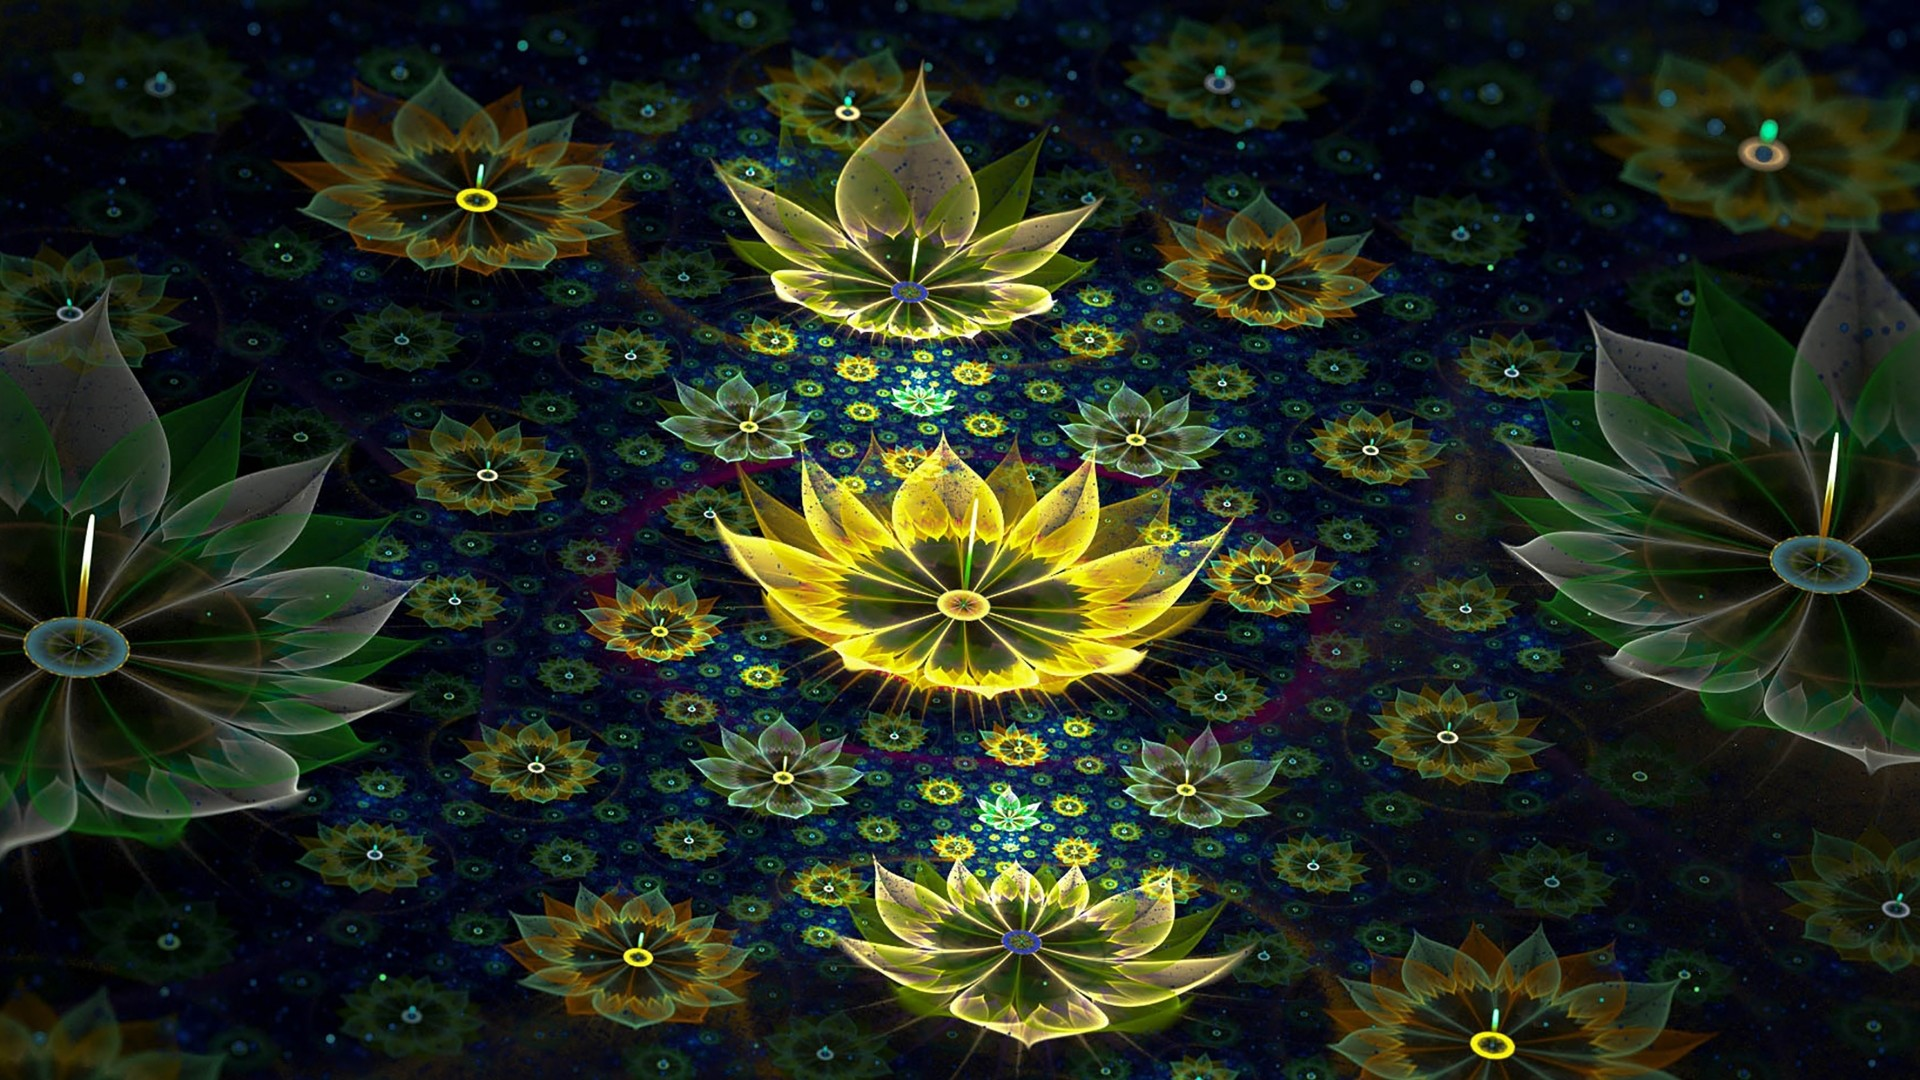 … Background Full HD 1080p. Wallpaper fractal, abstract, flowers